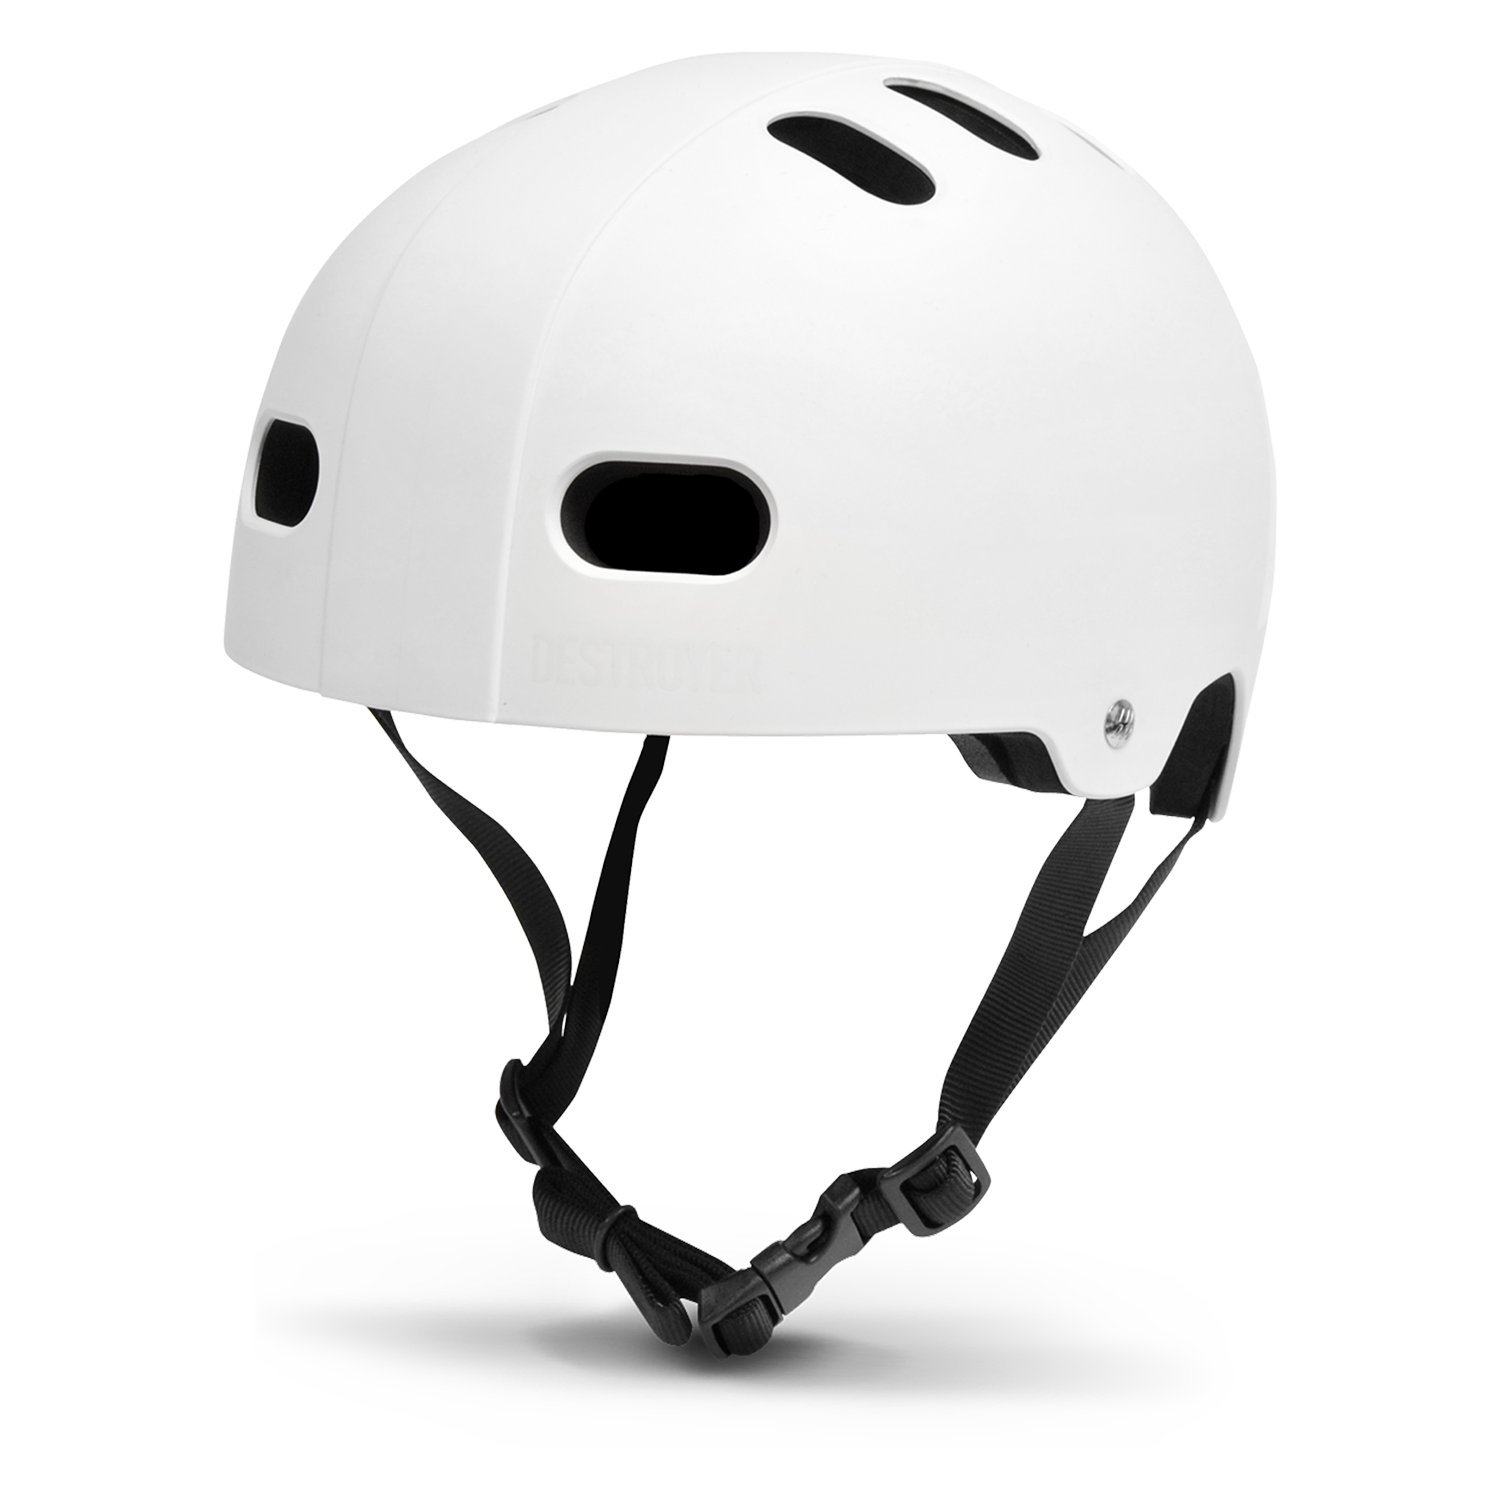 DESTROYER Skateboard and Bike Certified Helmet with Custom Fit Pads (Large/X-Large - Adults, White)